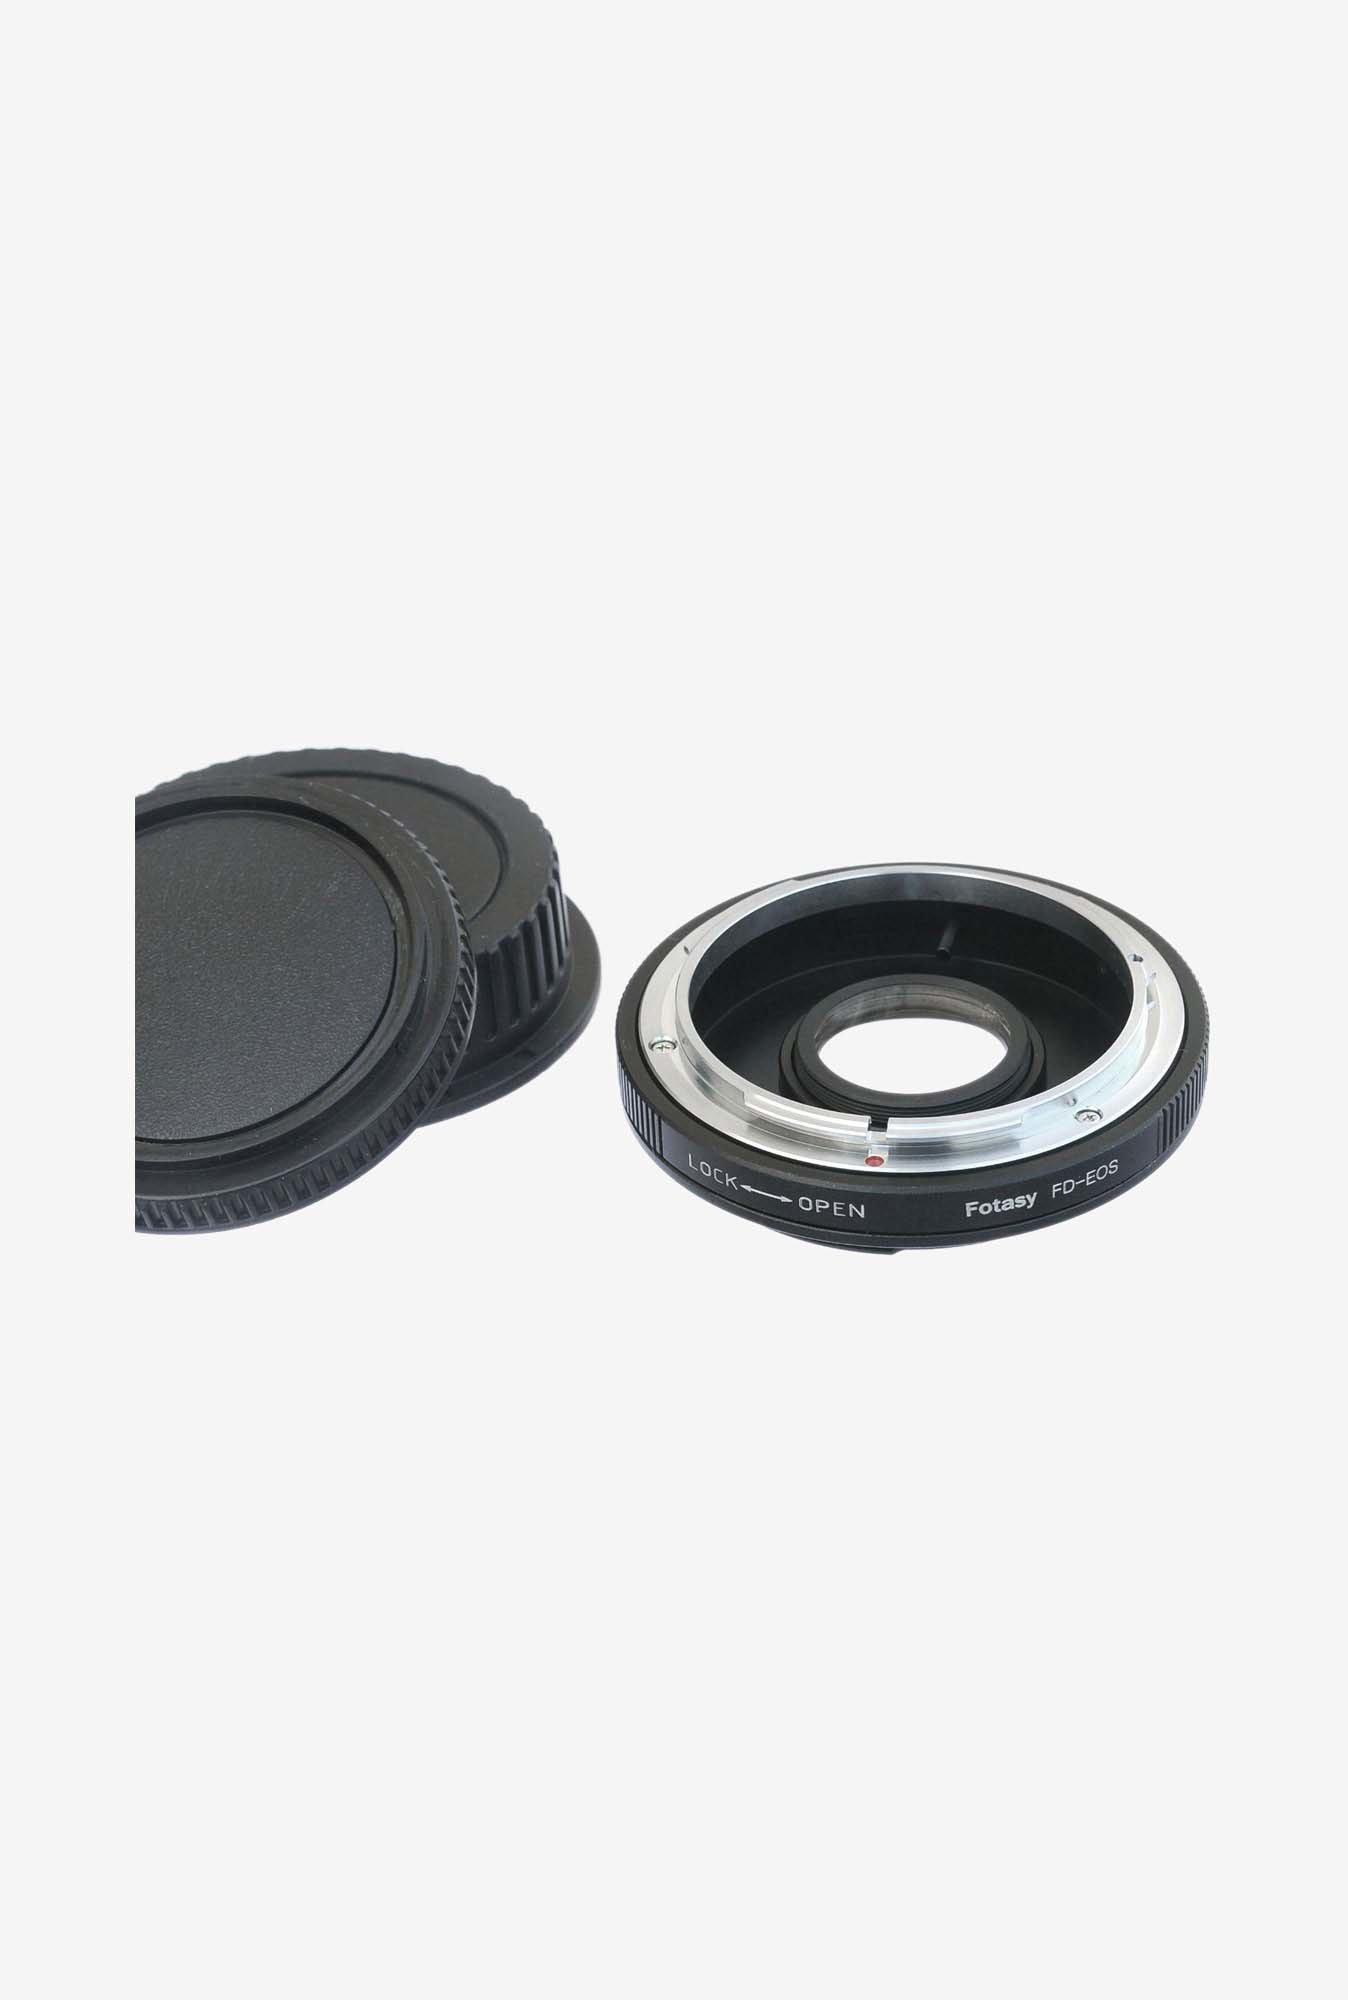 Fotasy EFFD Lens Mount Camera Adapter (Black)